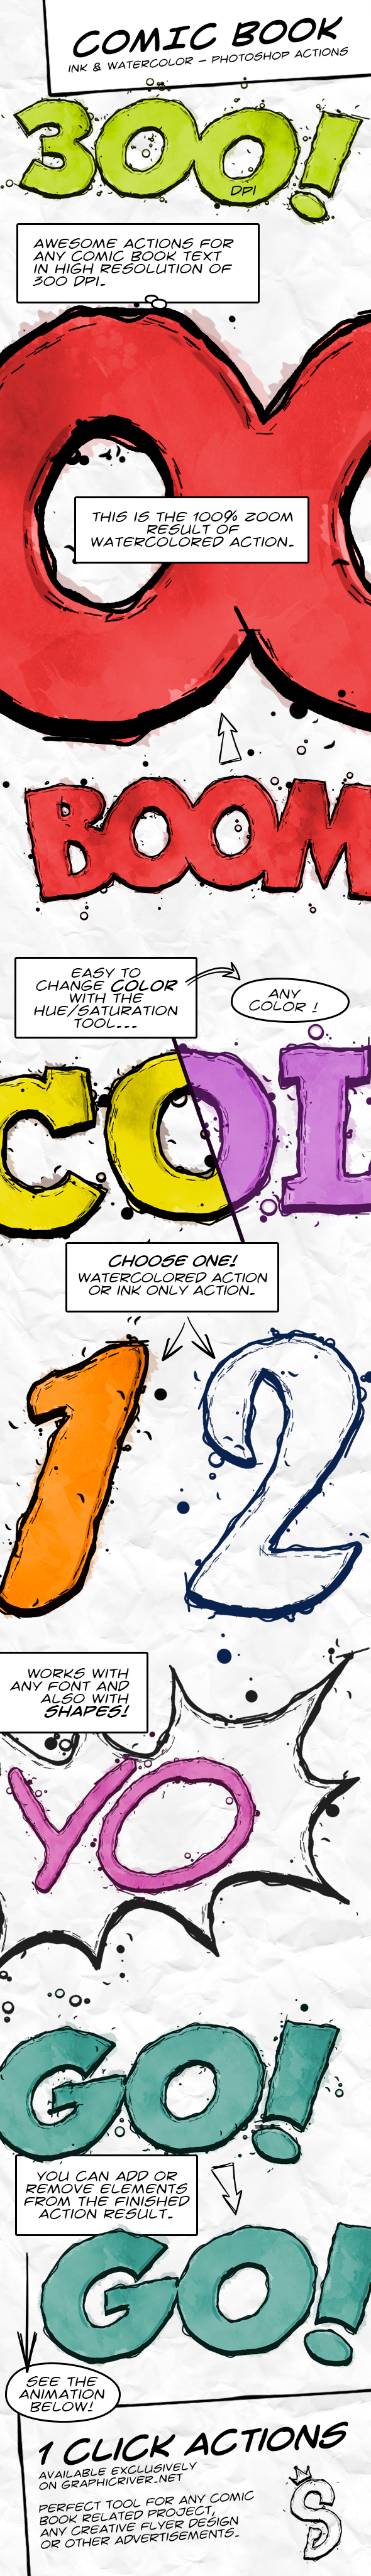 Comic Book Ink Actions - 300 DPI